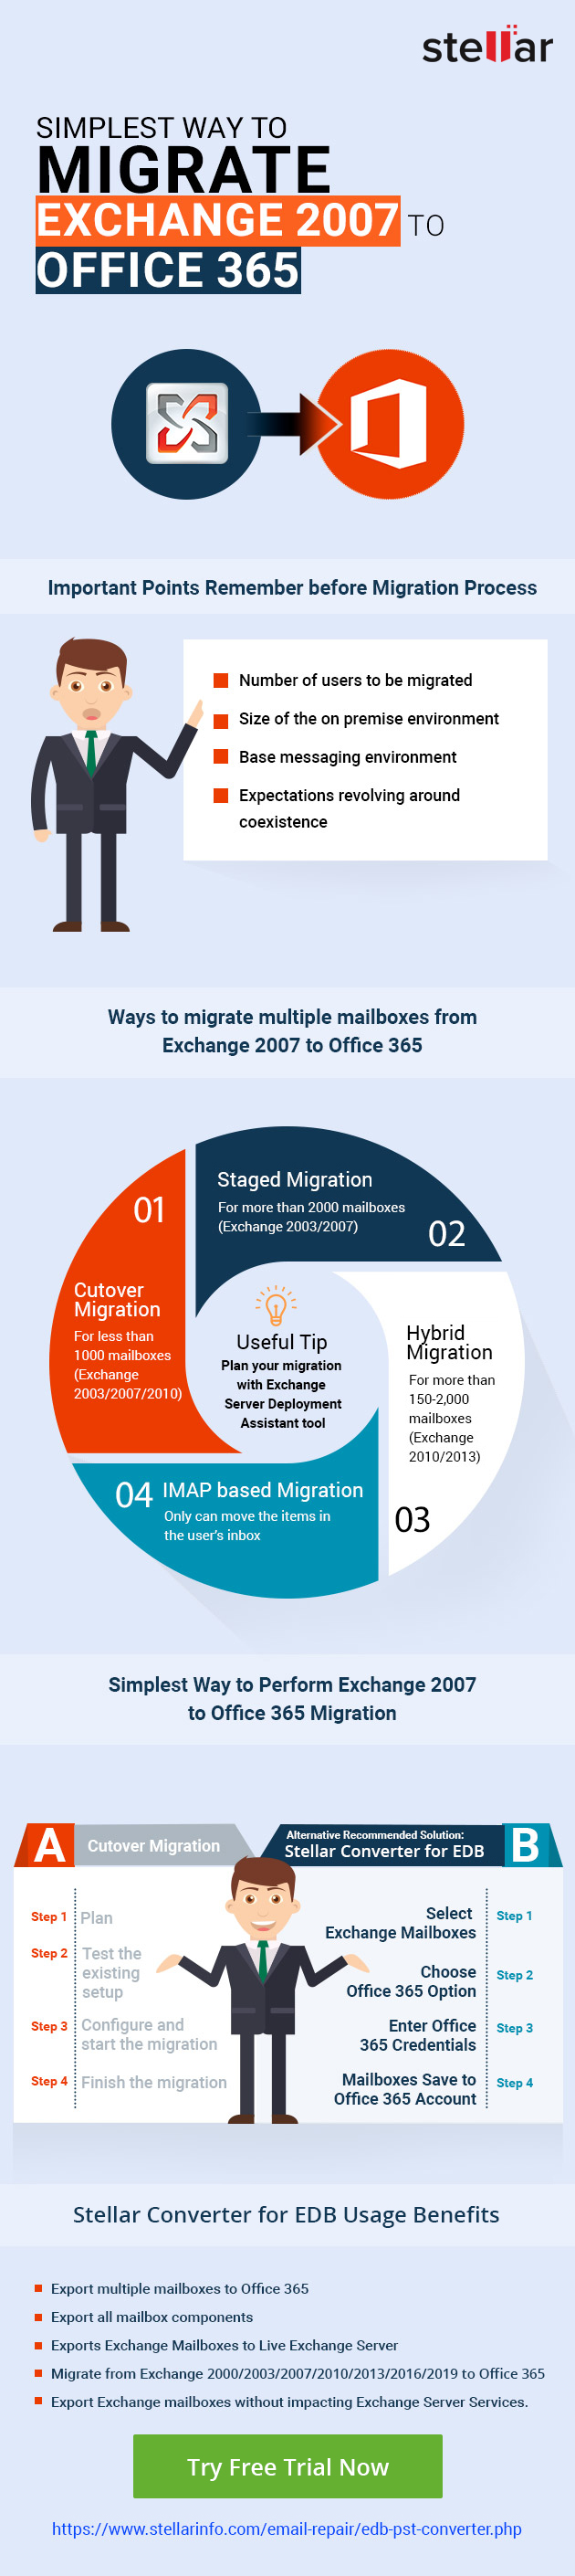 The simplest way to migrate Exchange 2007 to Office 365